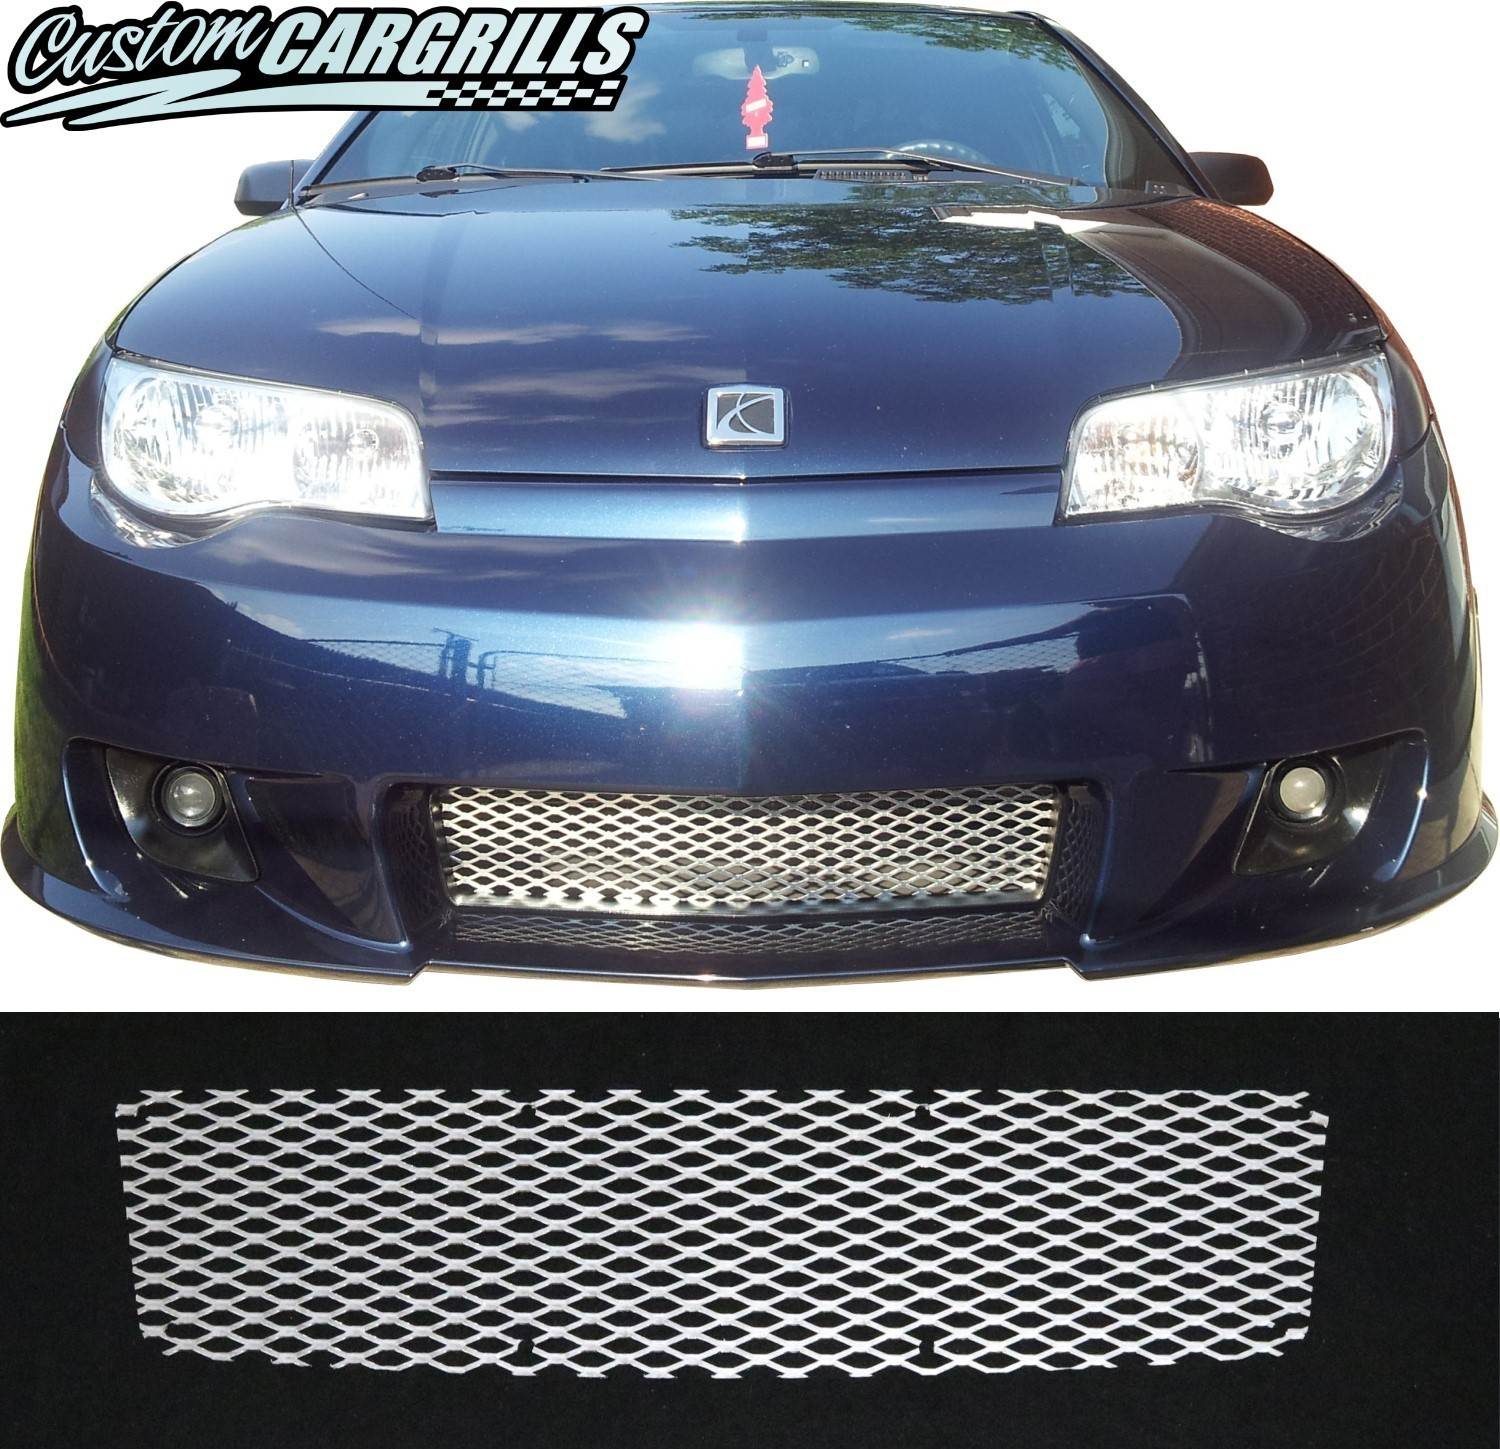 2004-07 Saturn ION Redline Mesh Grill Kit